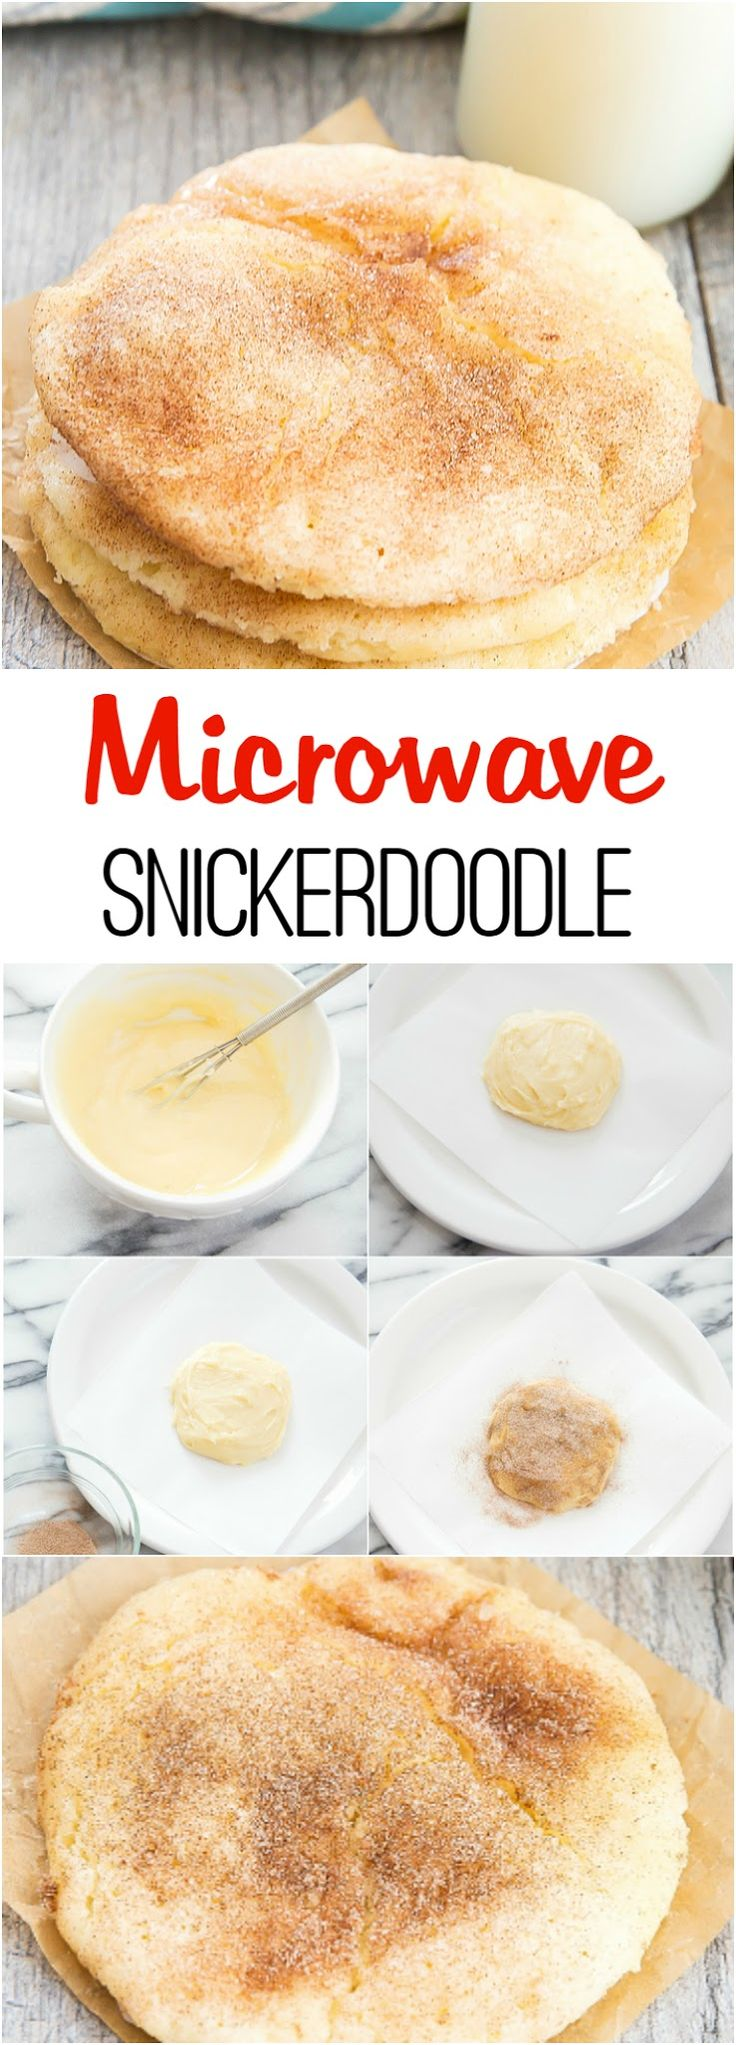 Microwave Snickerdoodle. Make one single, chewy and soft snickerdoodle cookie in just a few minutes!